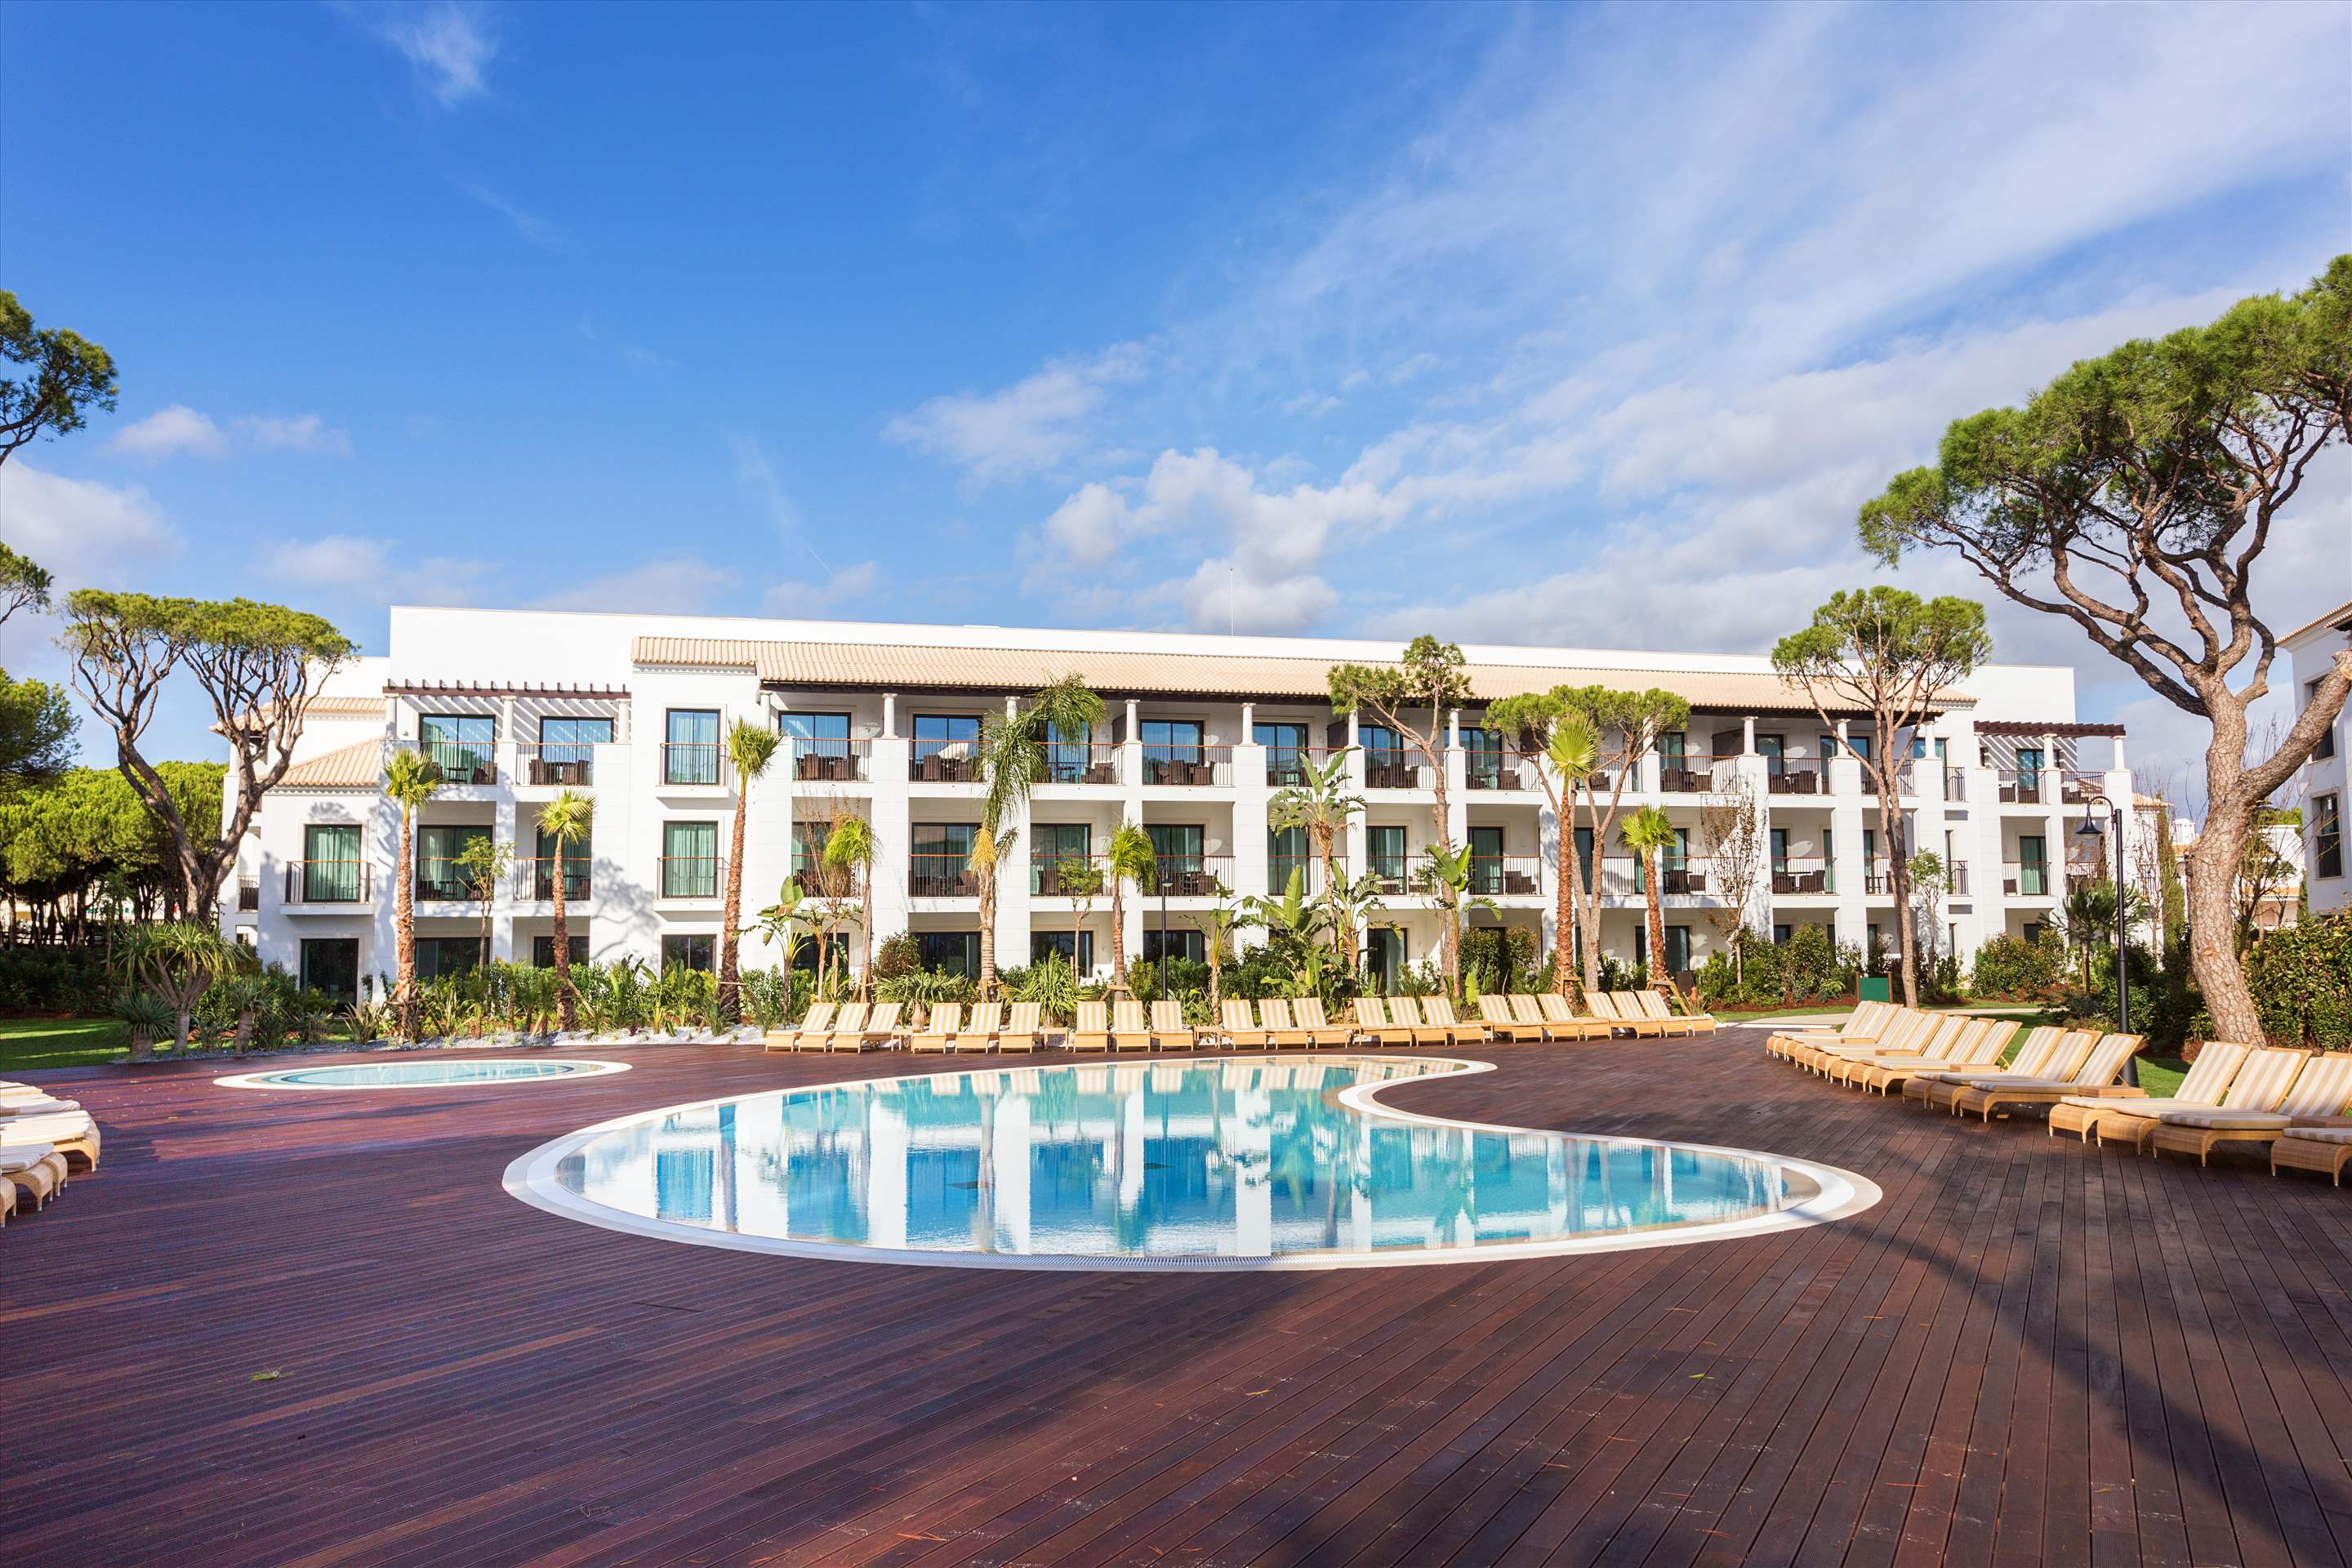 Pine Cliffs Gardens, Two Bedroom Suite, S/C Basis, 2 bedroom apartment in Pine Cliffs Resort, Algarve Photo #1